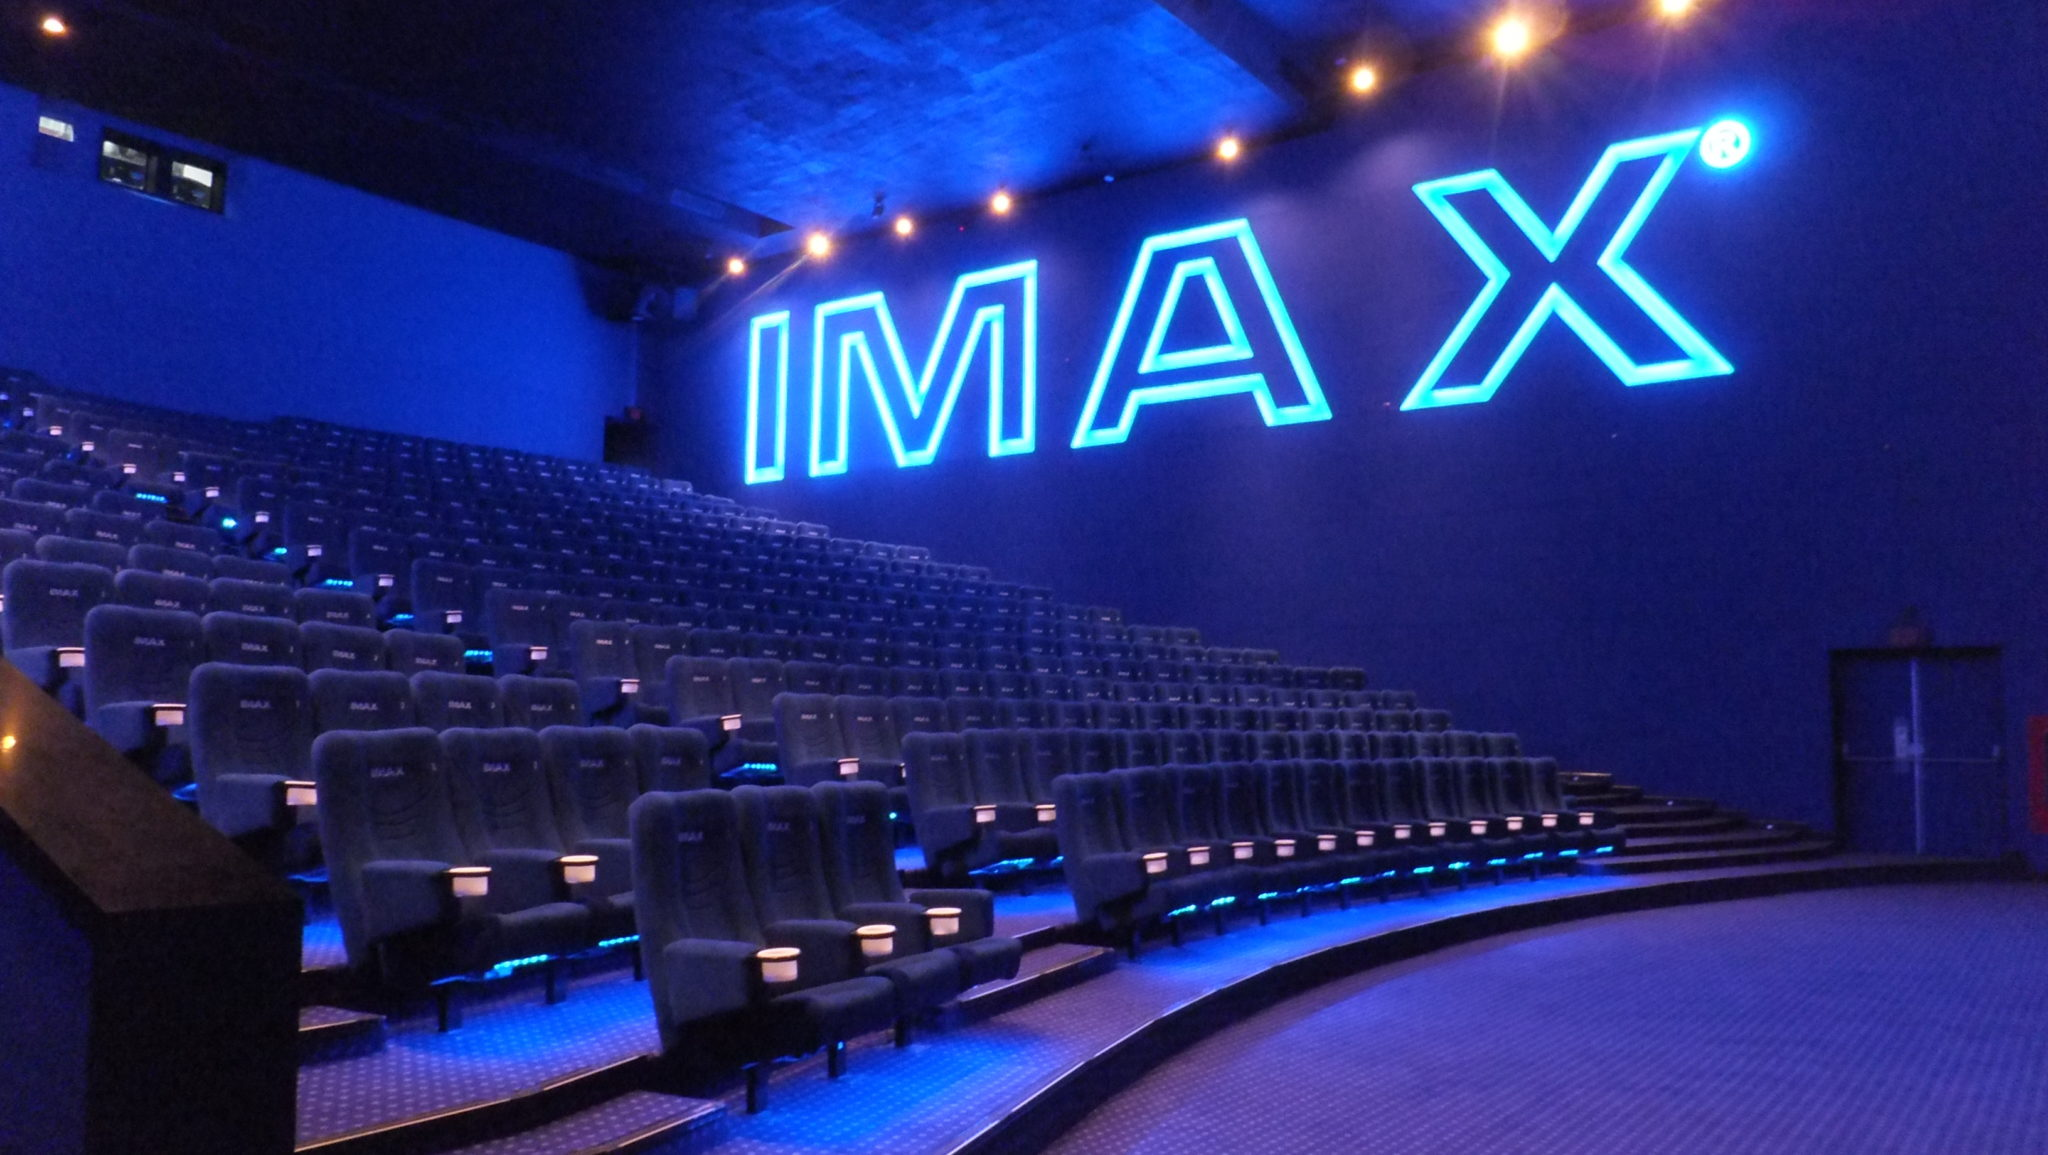 Disney Extends Imax Deal To 2017 Includes Two Pixar Films Rotoscopers